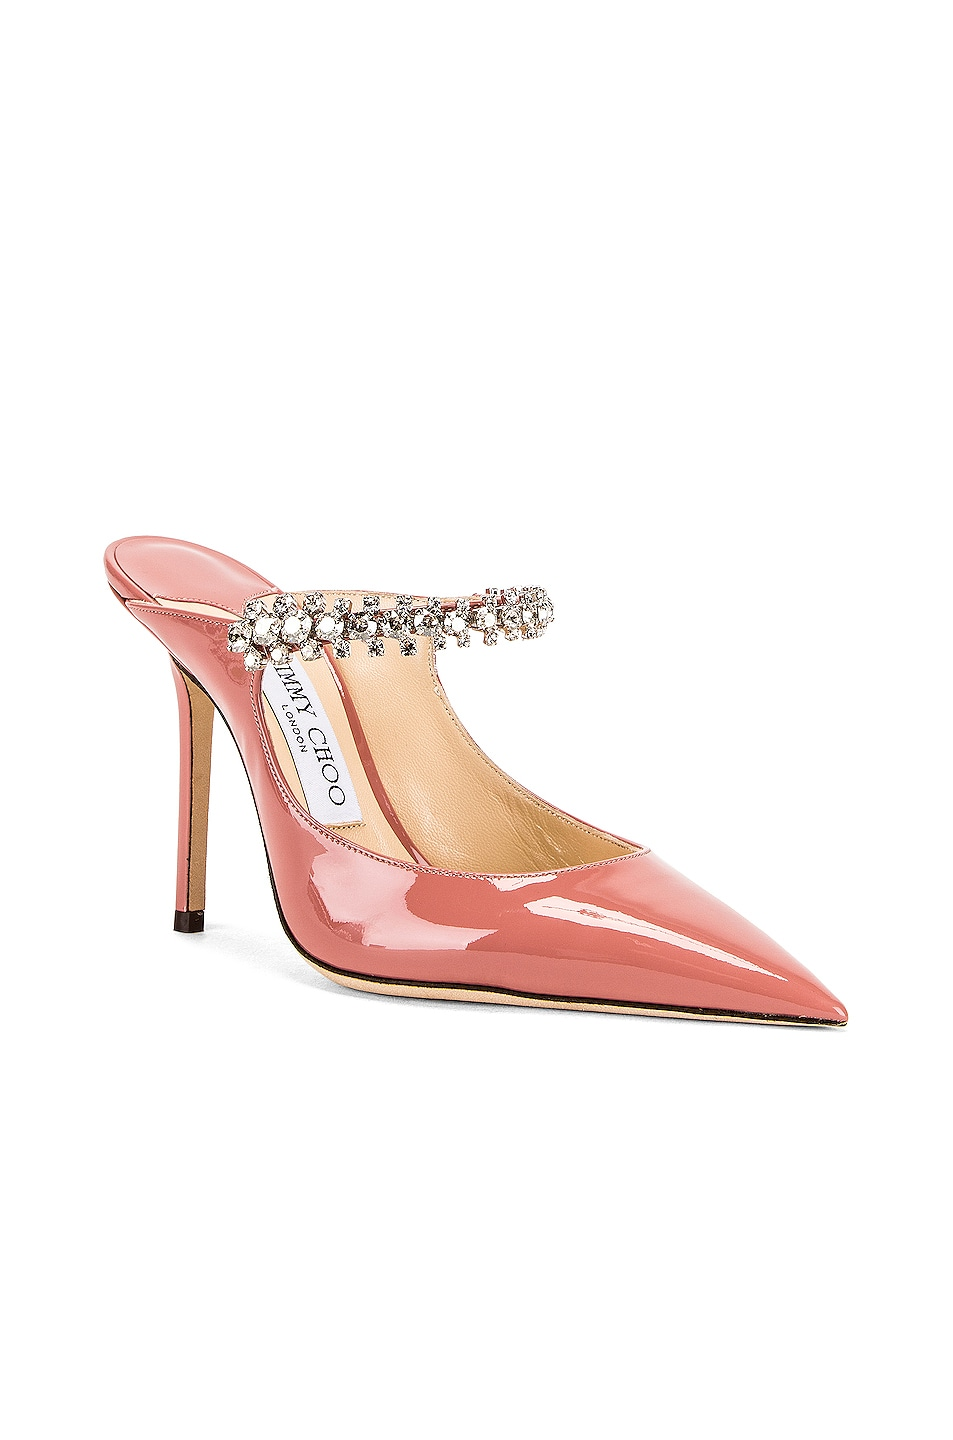 Image 2 of Jimmy Choo Bing 100 Patent Leather Mule in Blush